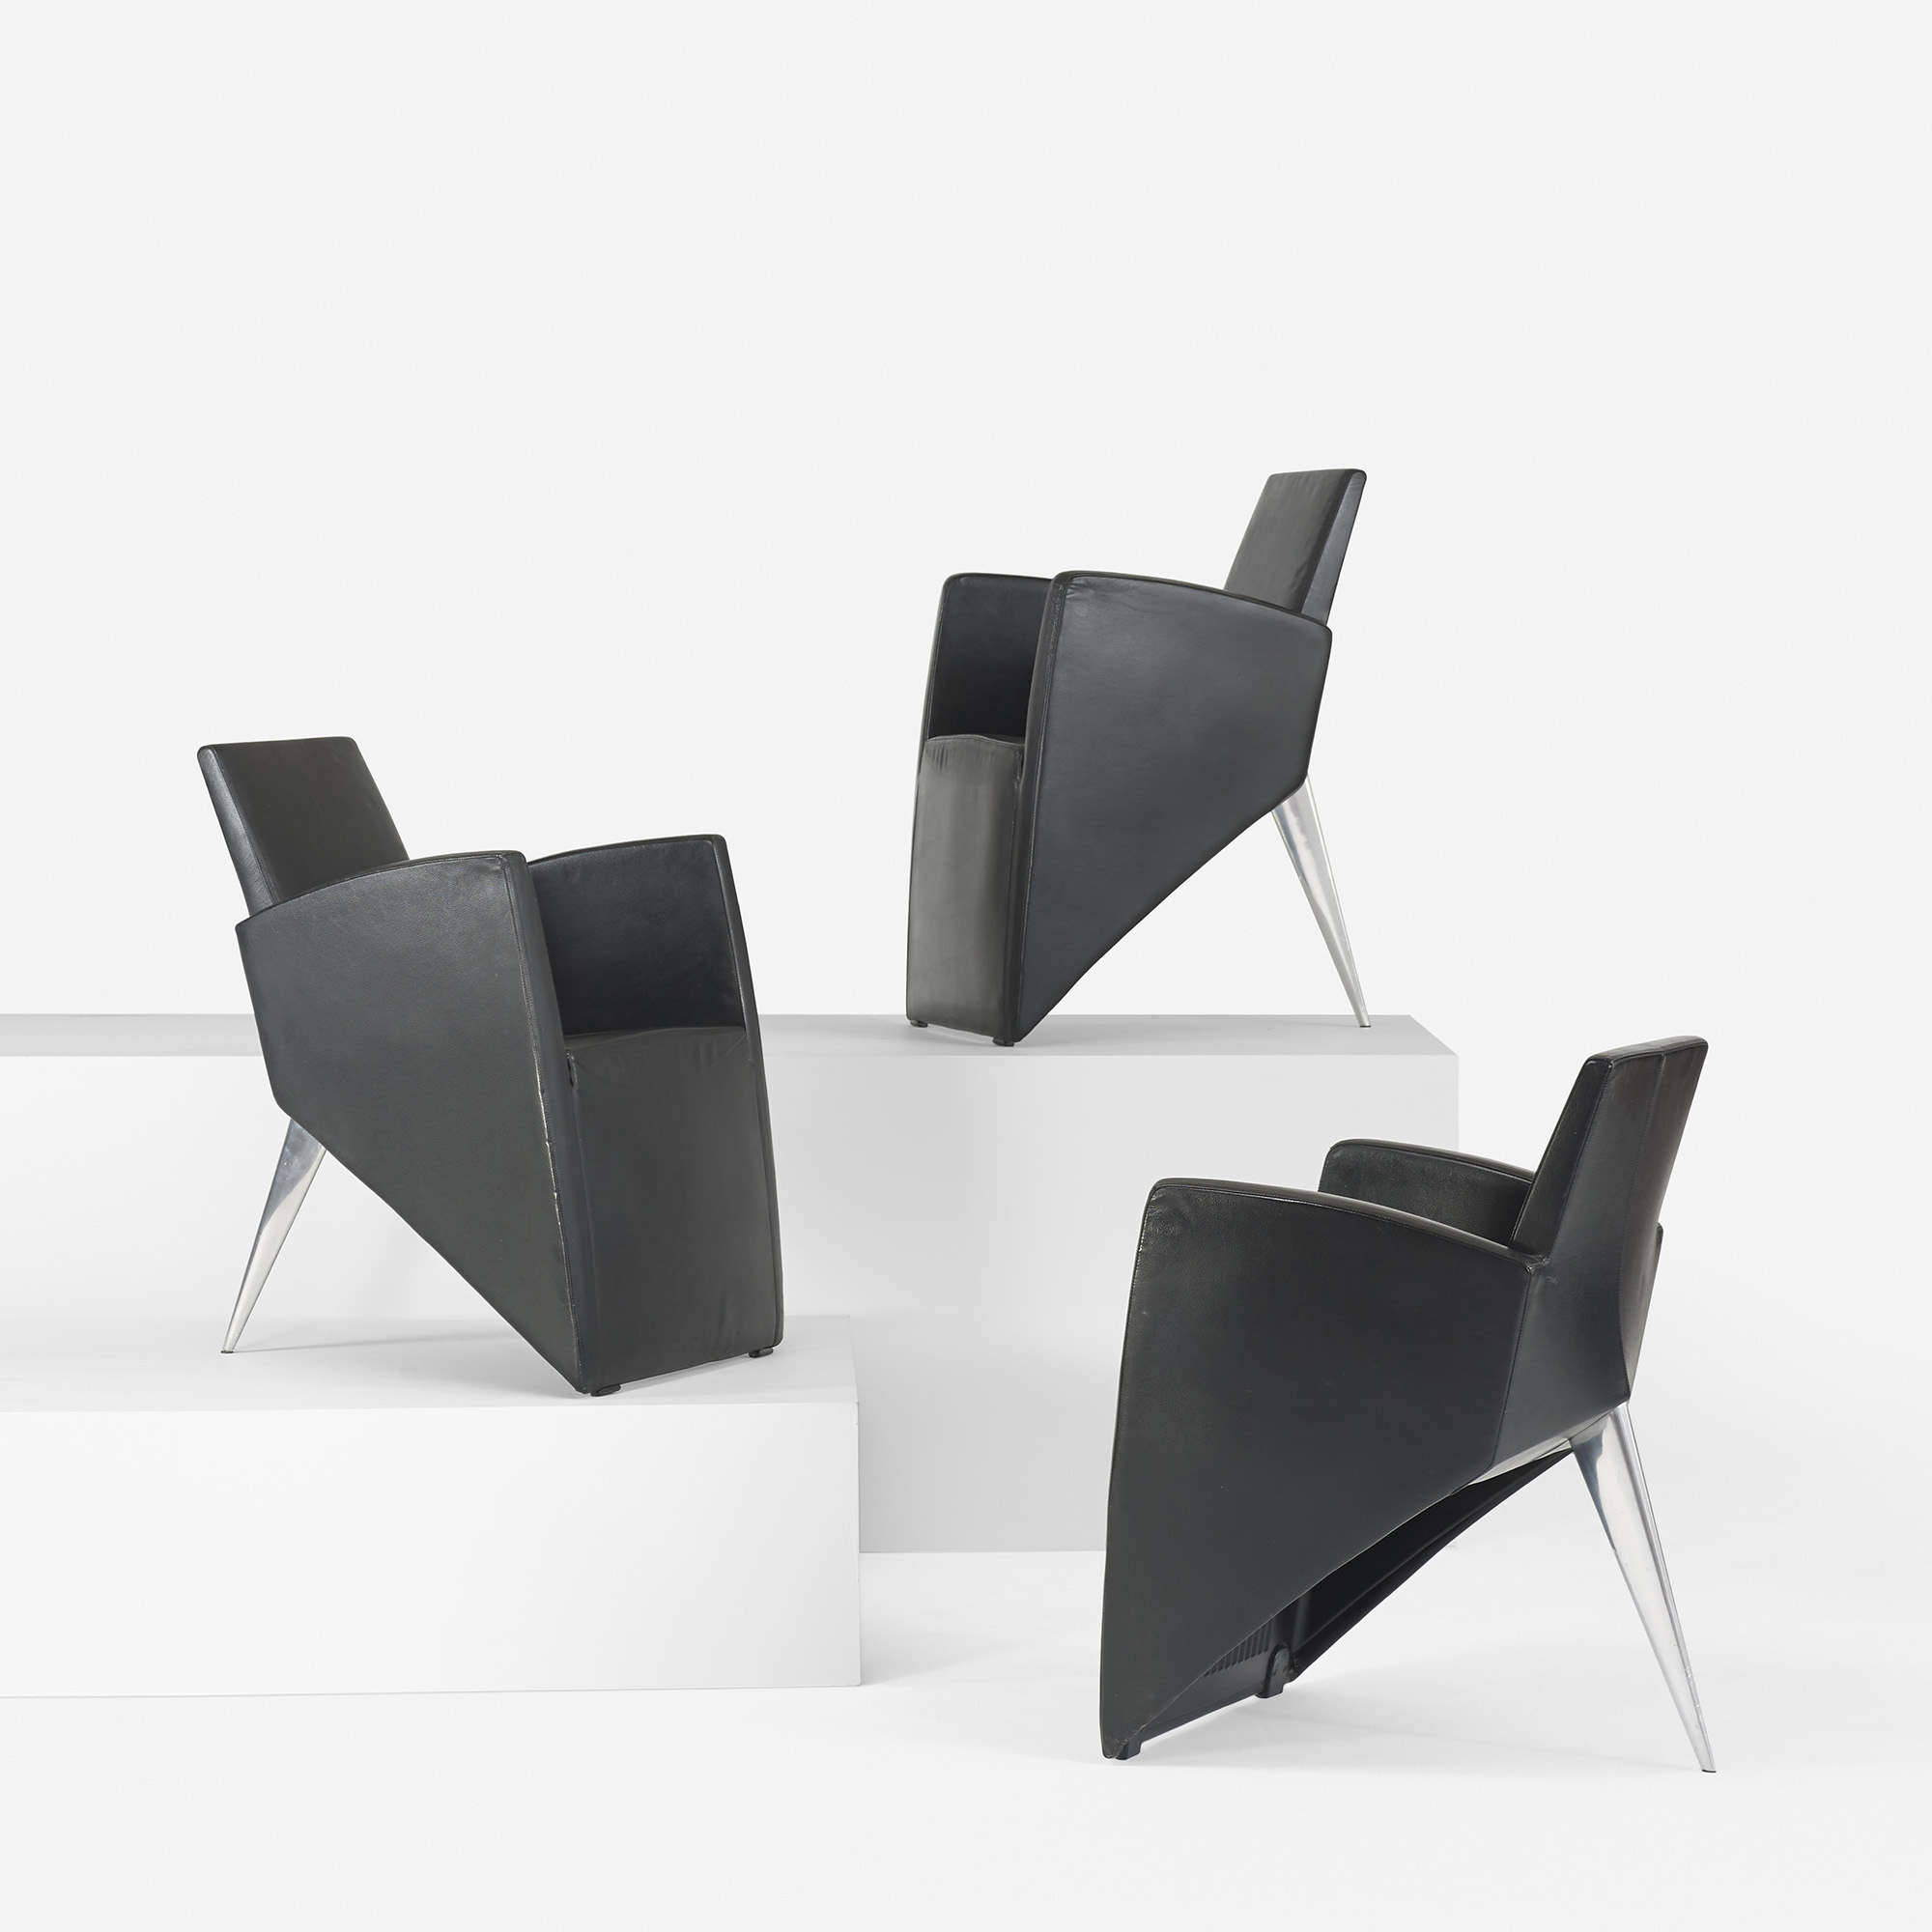 ... 361: Philippe Starck / J. (Serie Lang) Lounge Chairs, Set Of